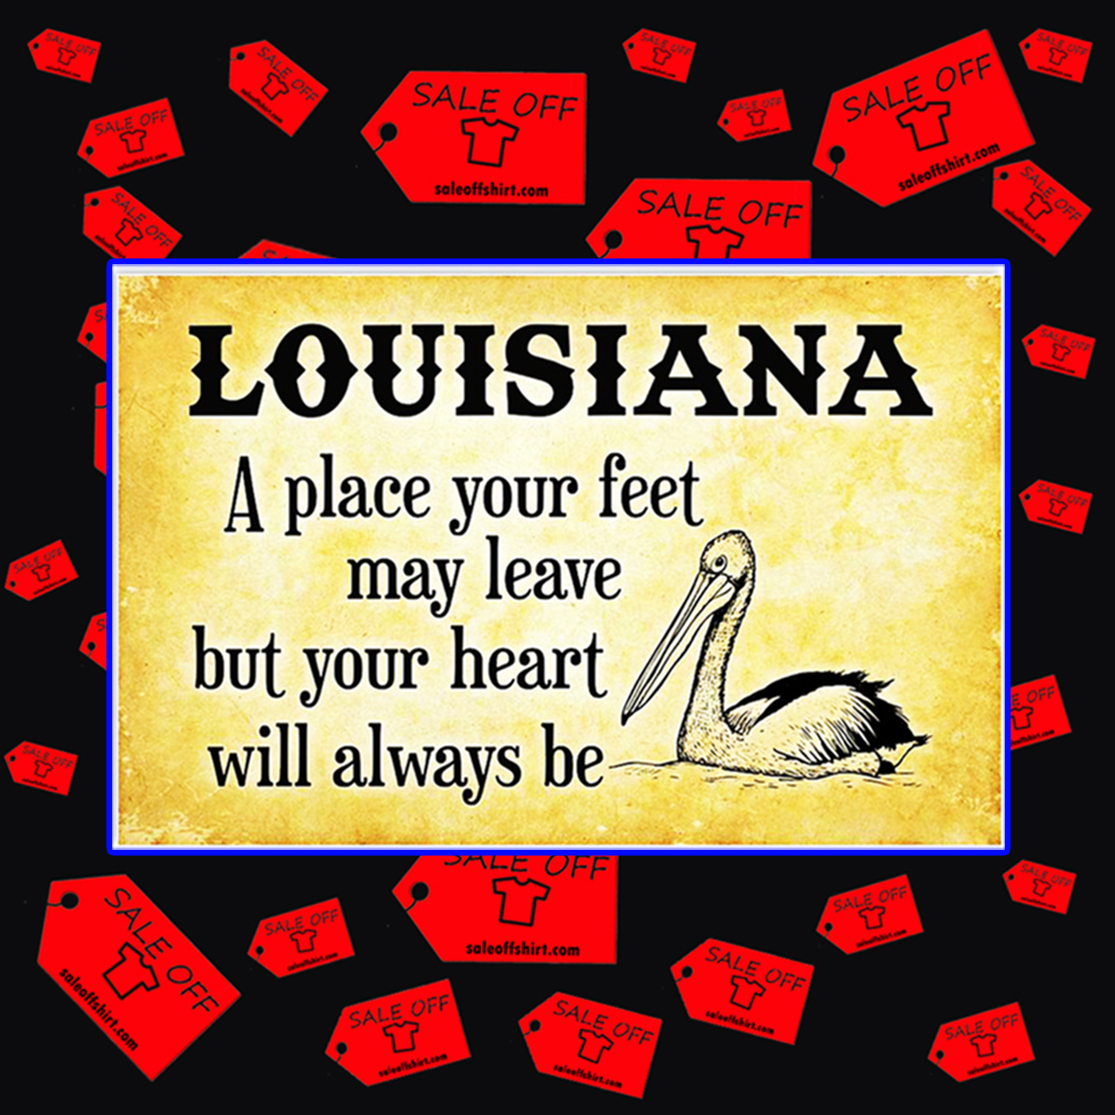 Louisiana a place your feet may leave but your heart will always be poster 24x16